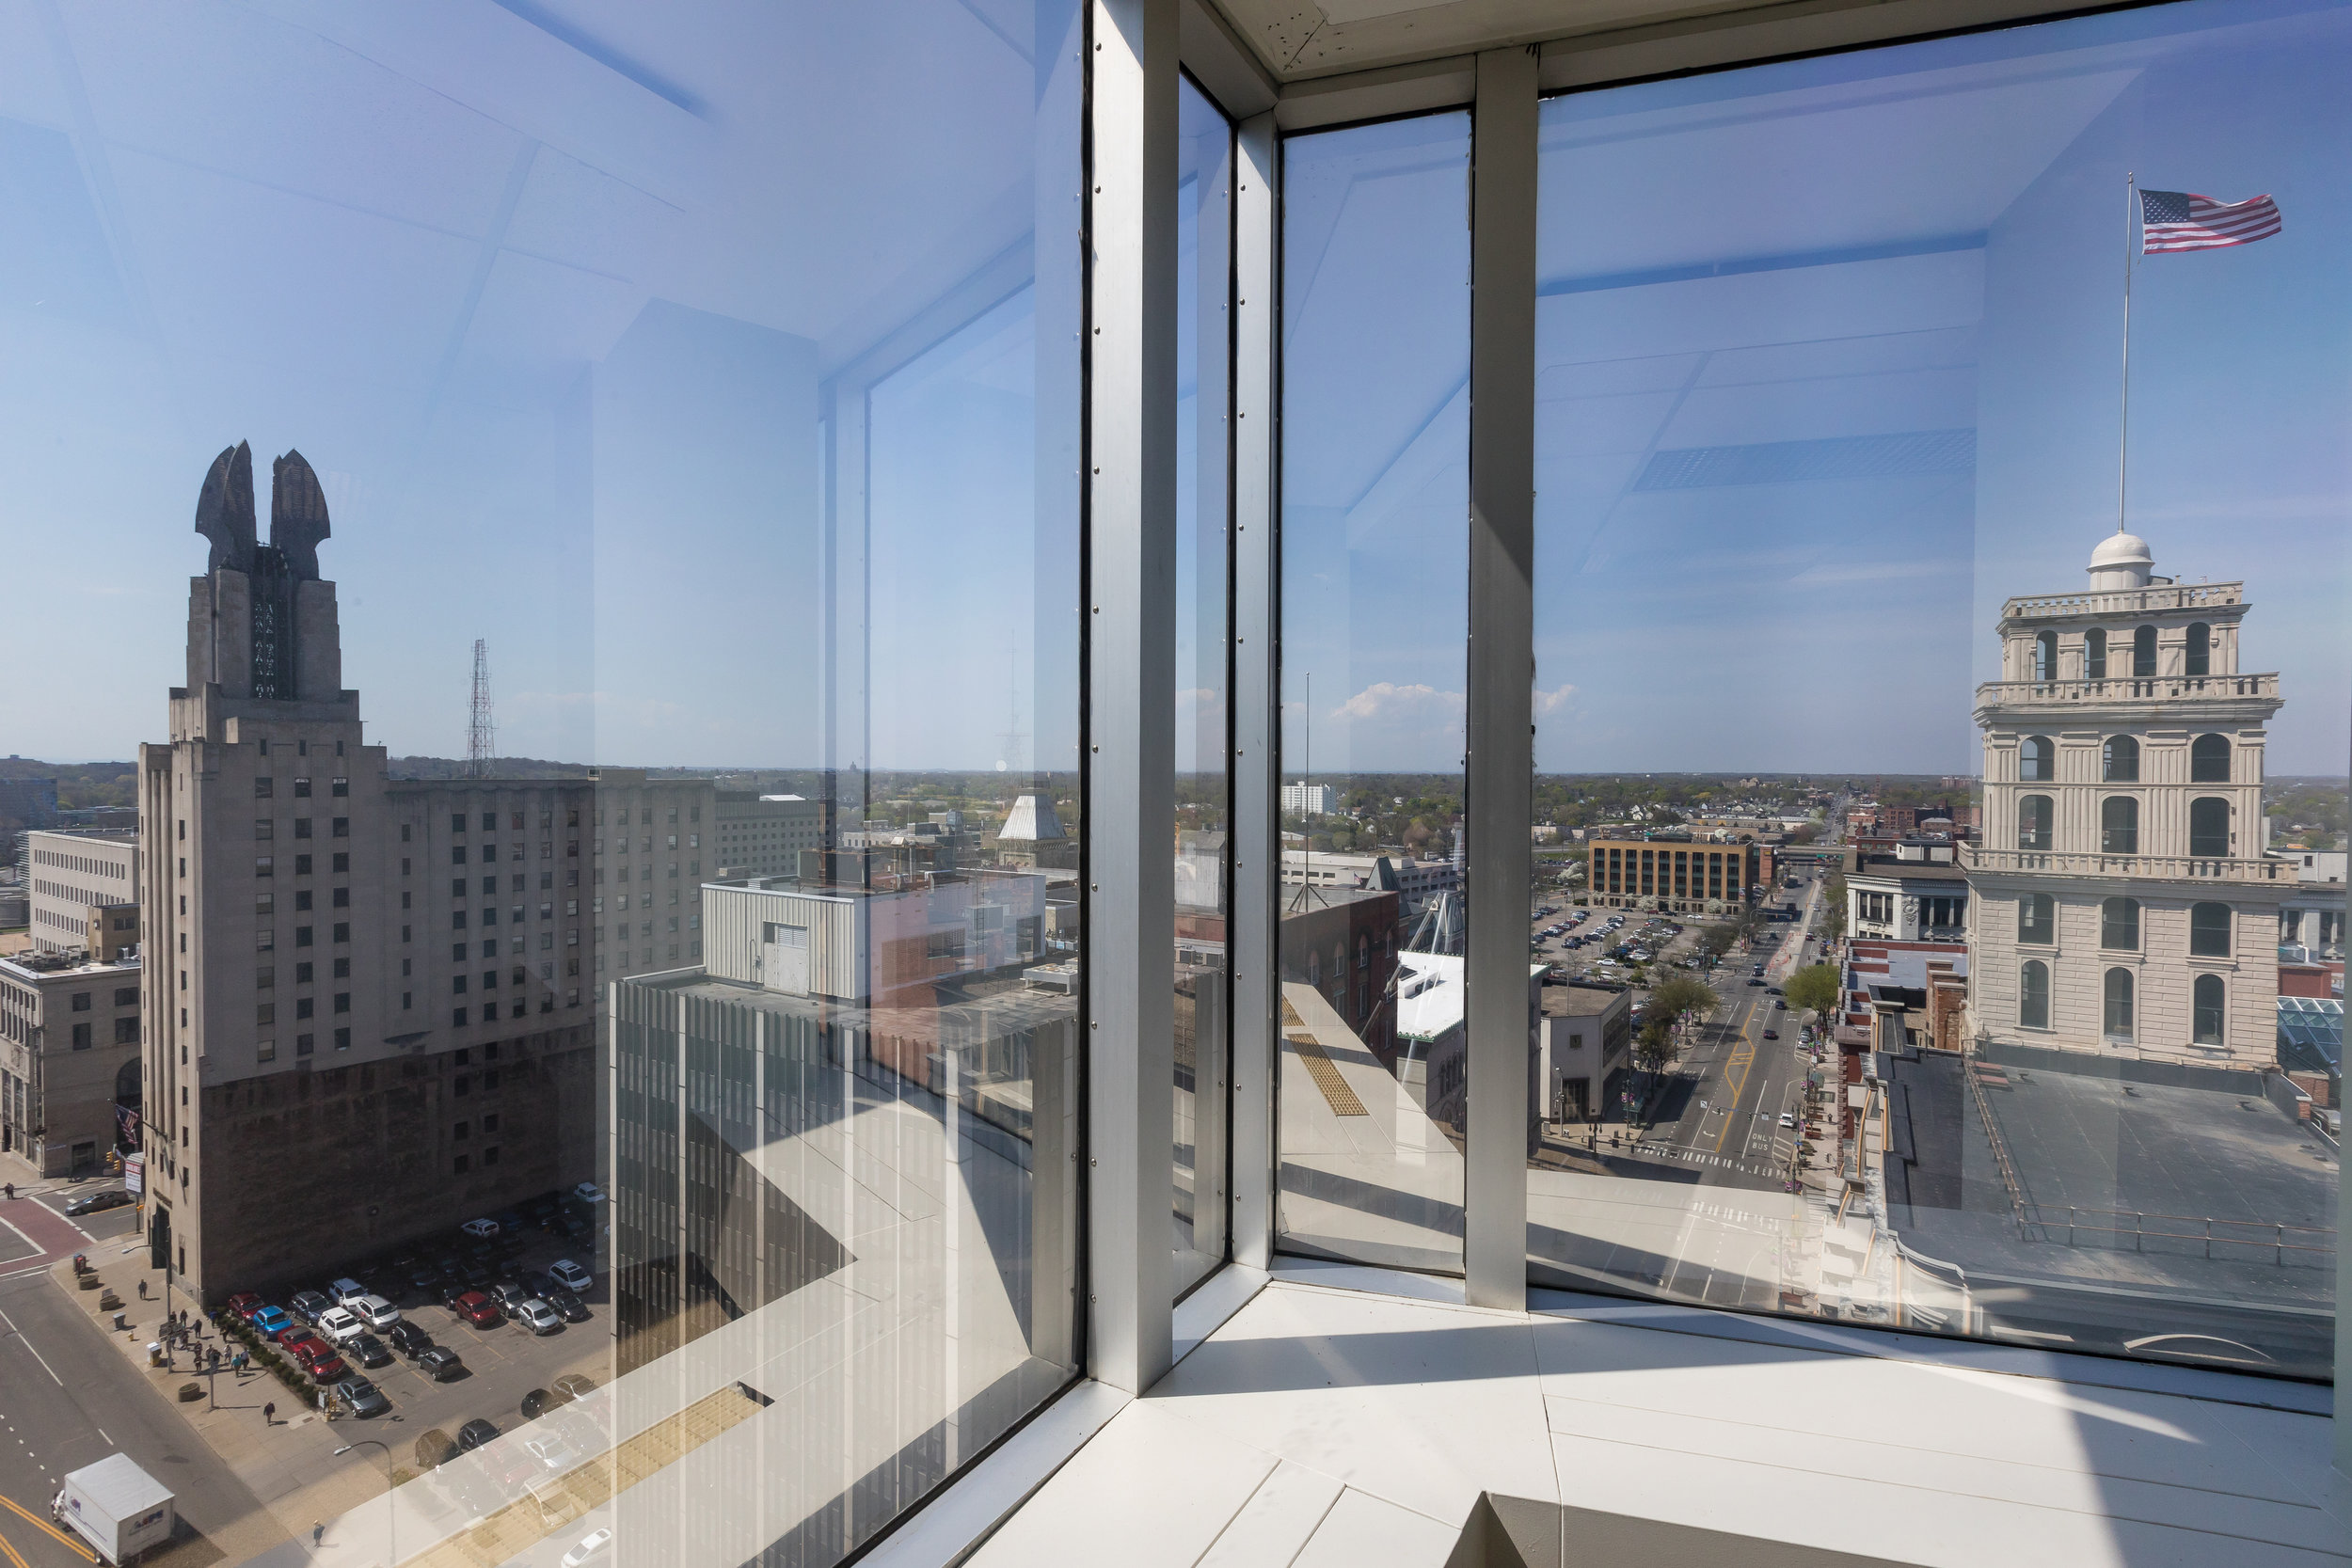 Sweeping views of the Rochester, NY skyline for your office.